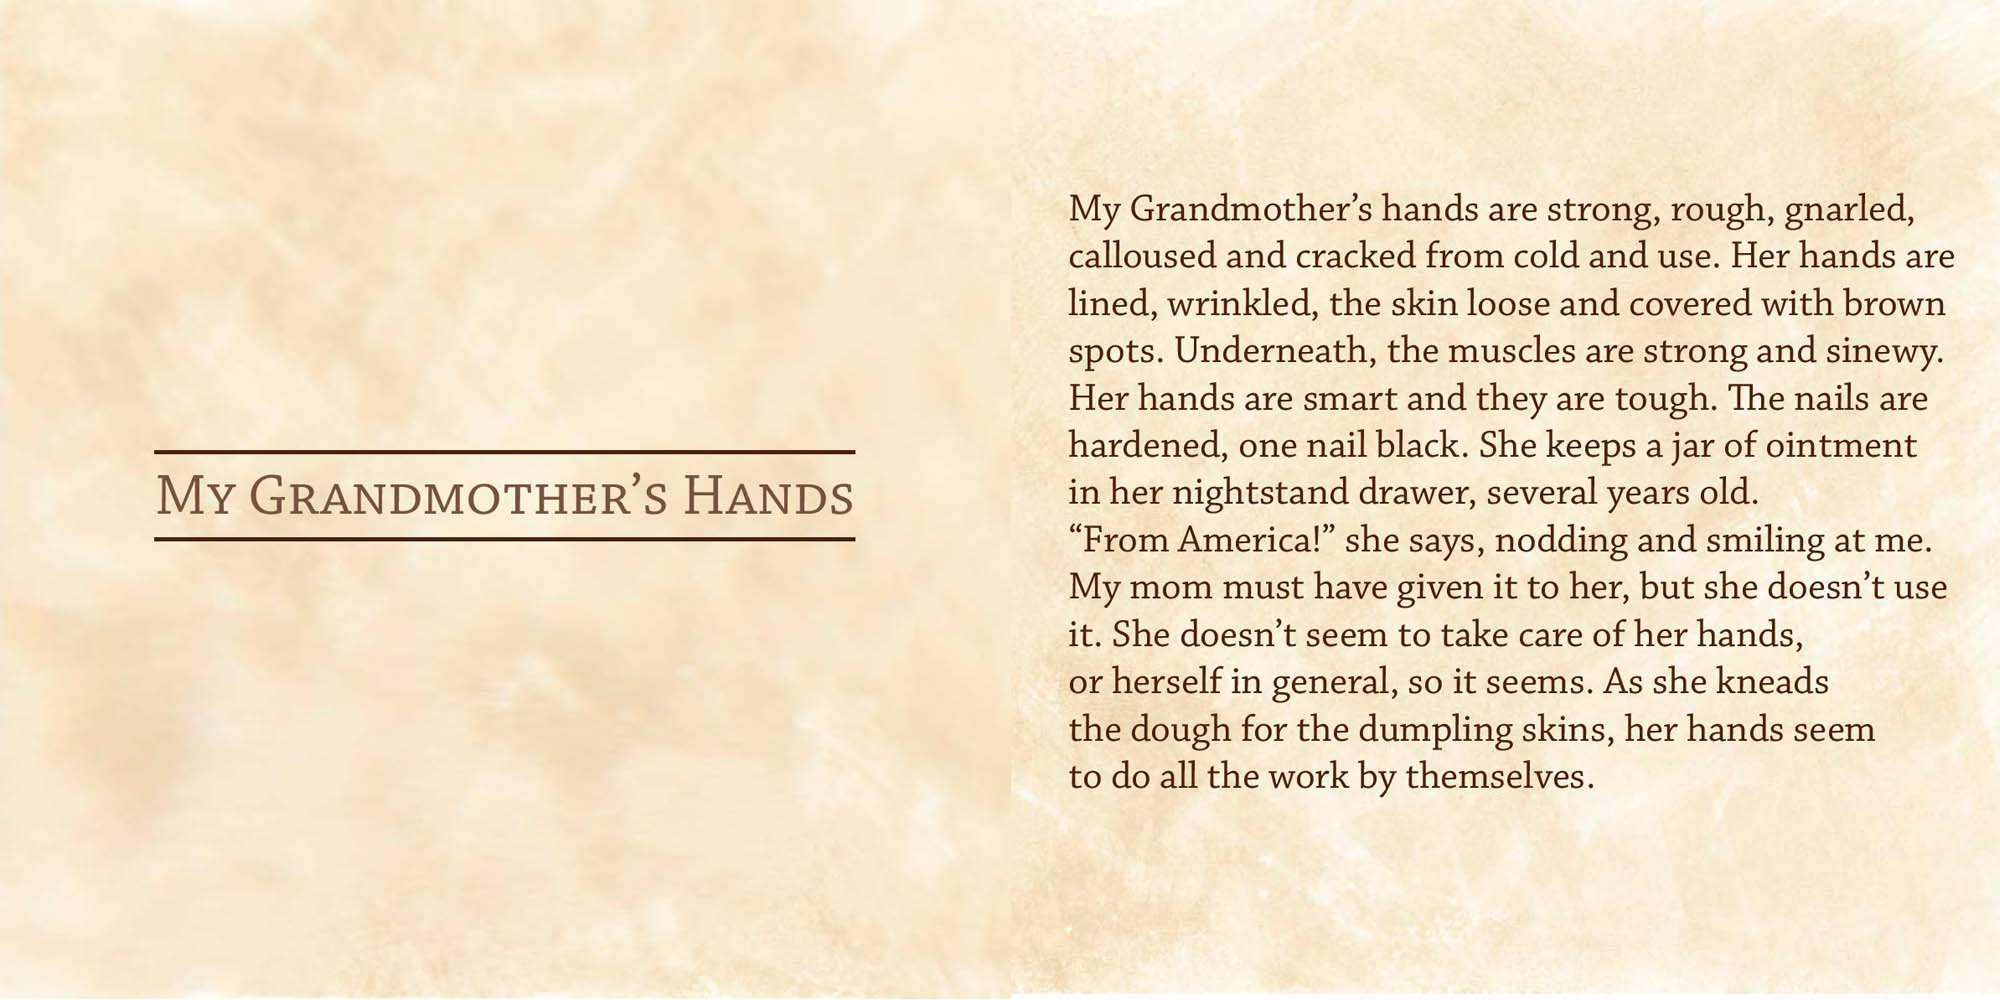 Text about Katherine's grandmother's rough hands